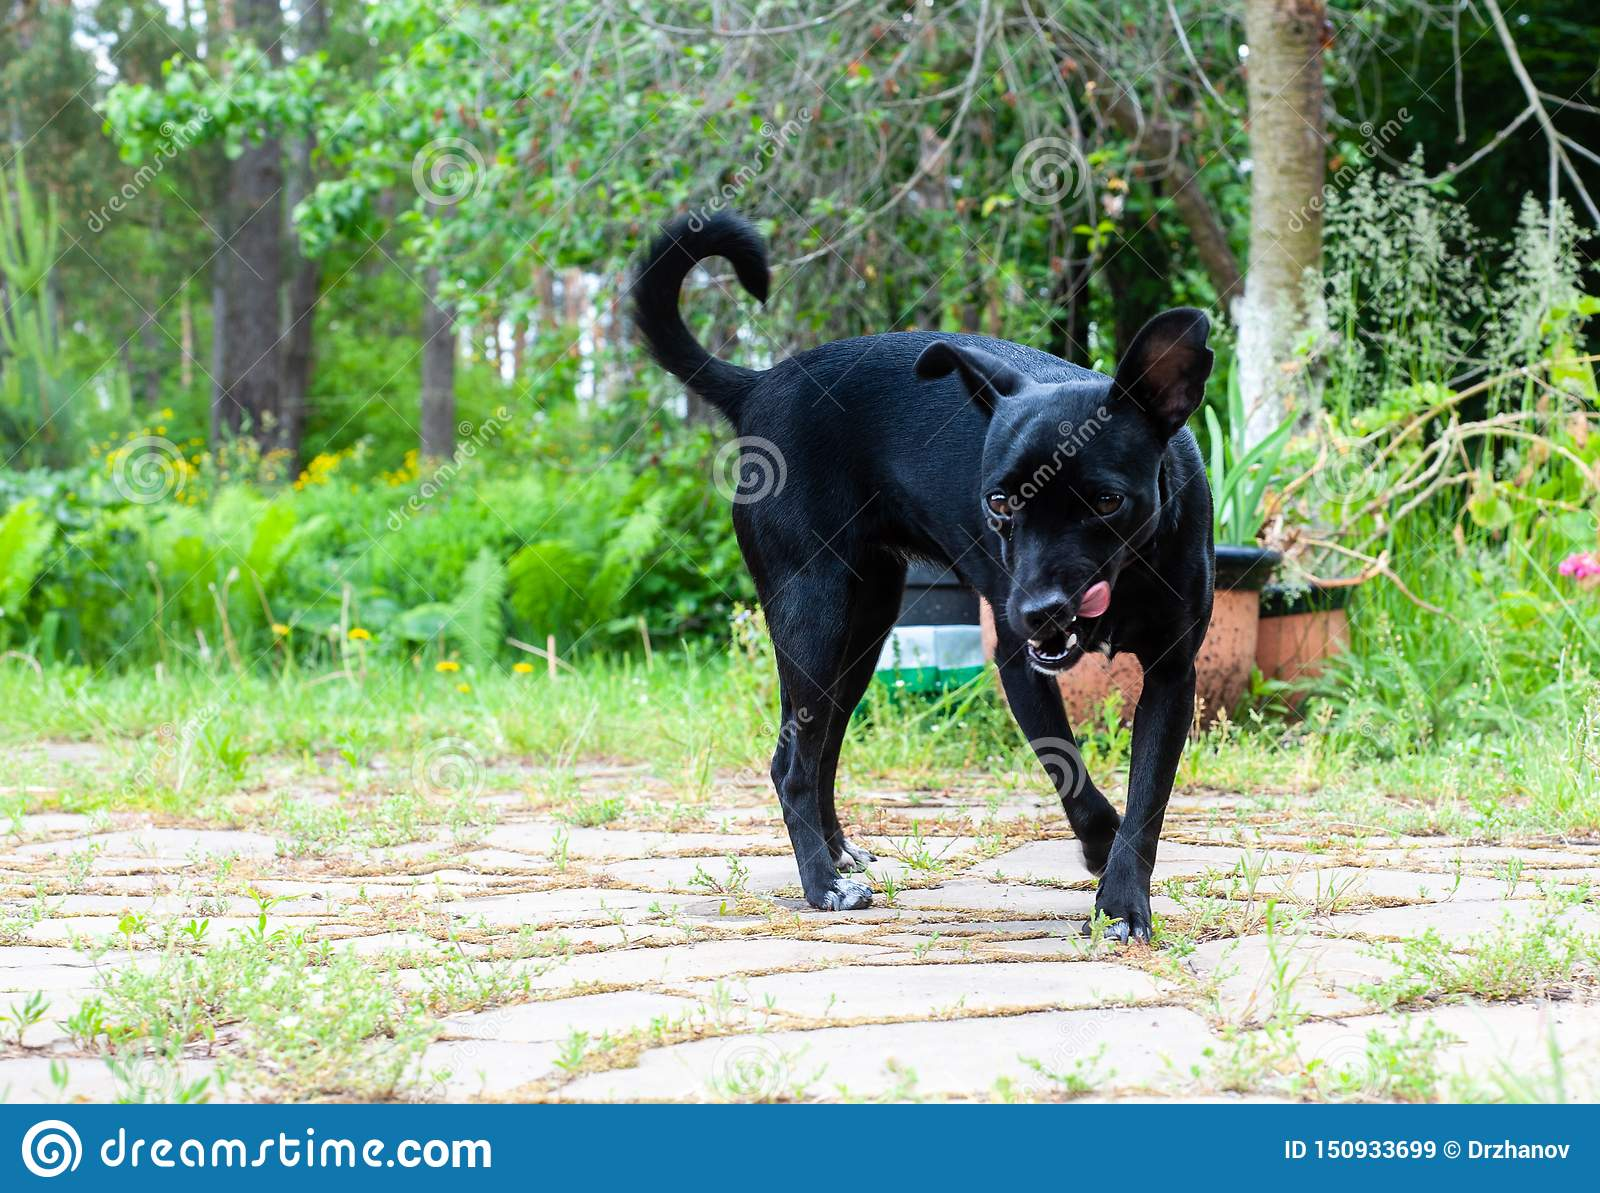 small black dog, looking like a pincher breed, looking to the camera and malevolently licking itself